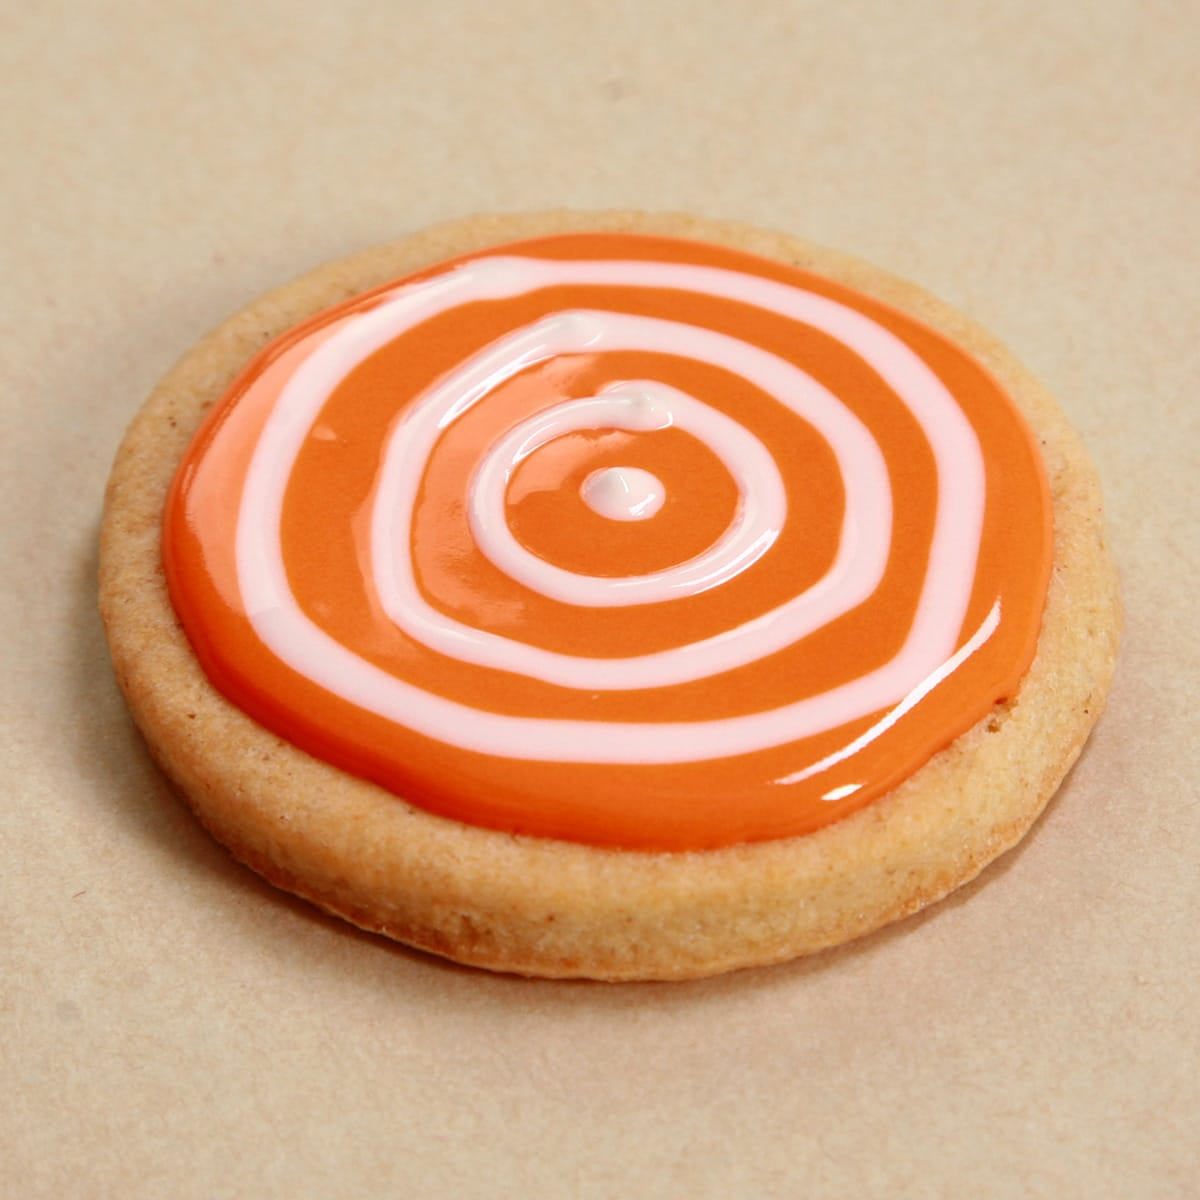 concentric circles of white frosting, piped out on the orange glazed cookie.